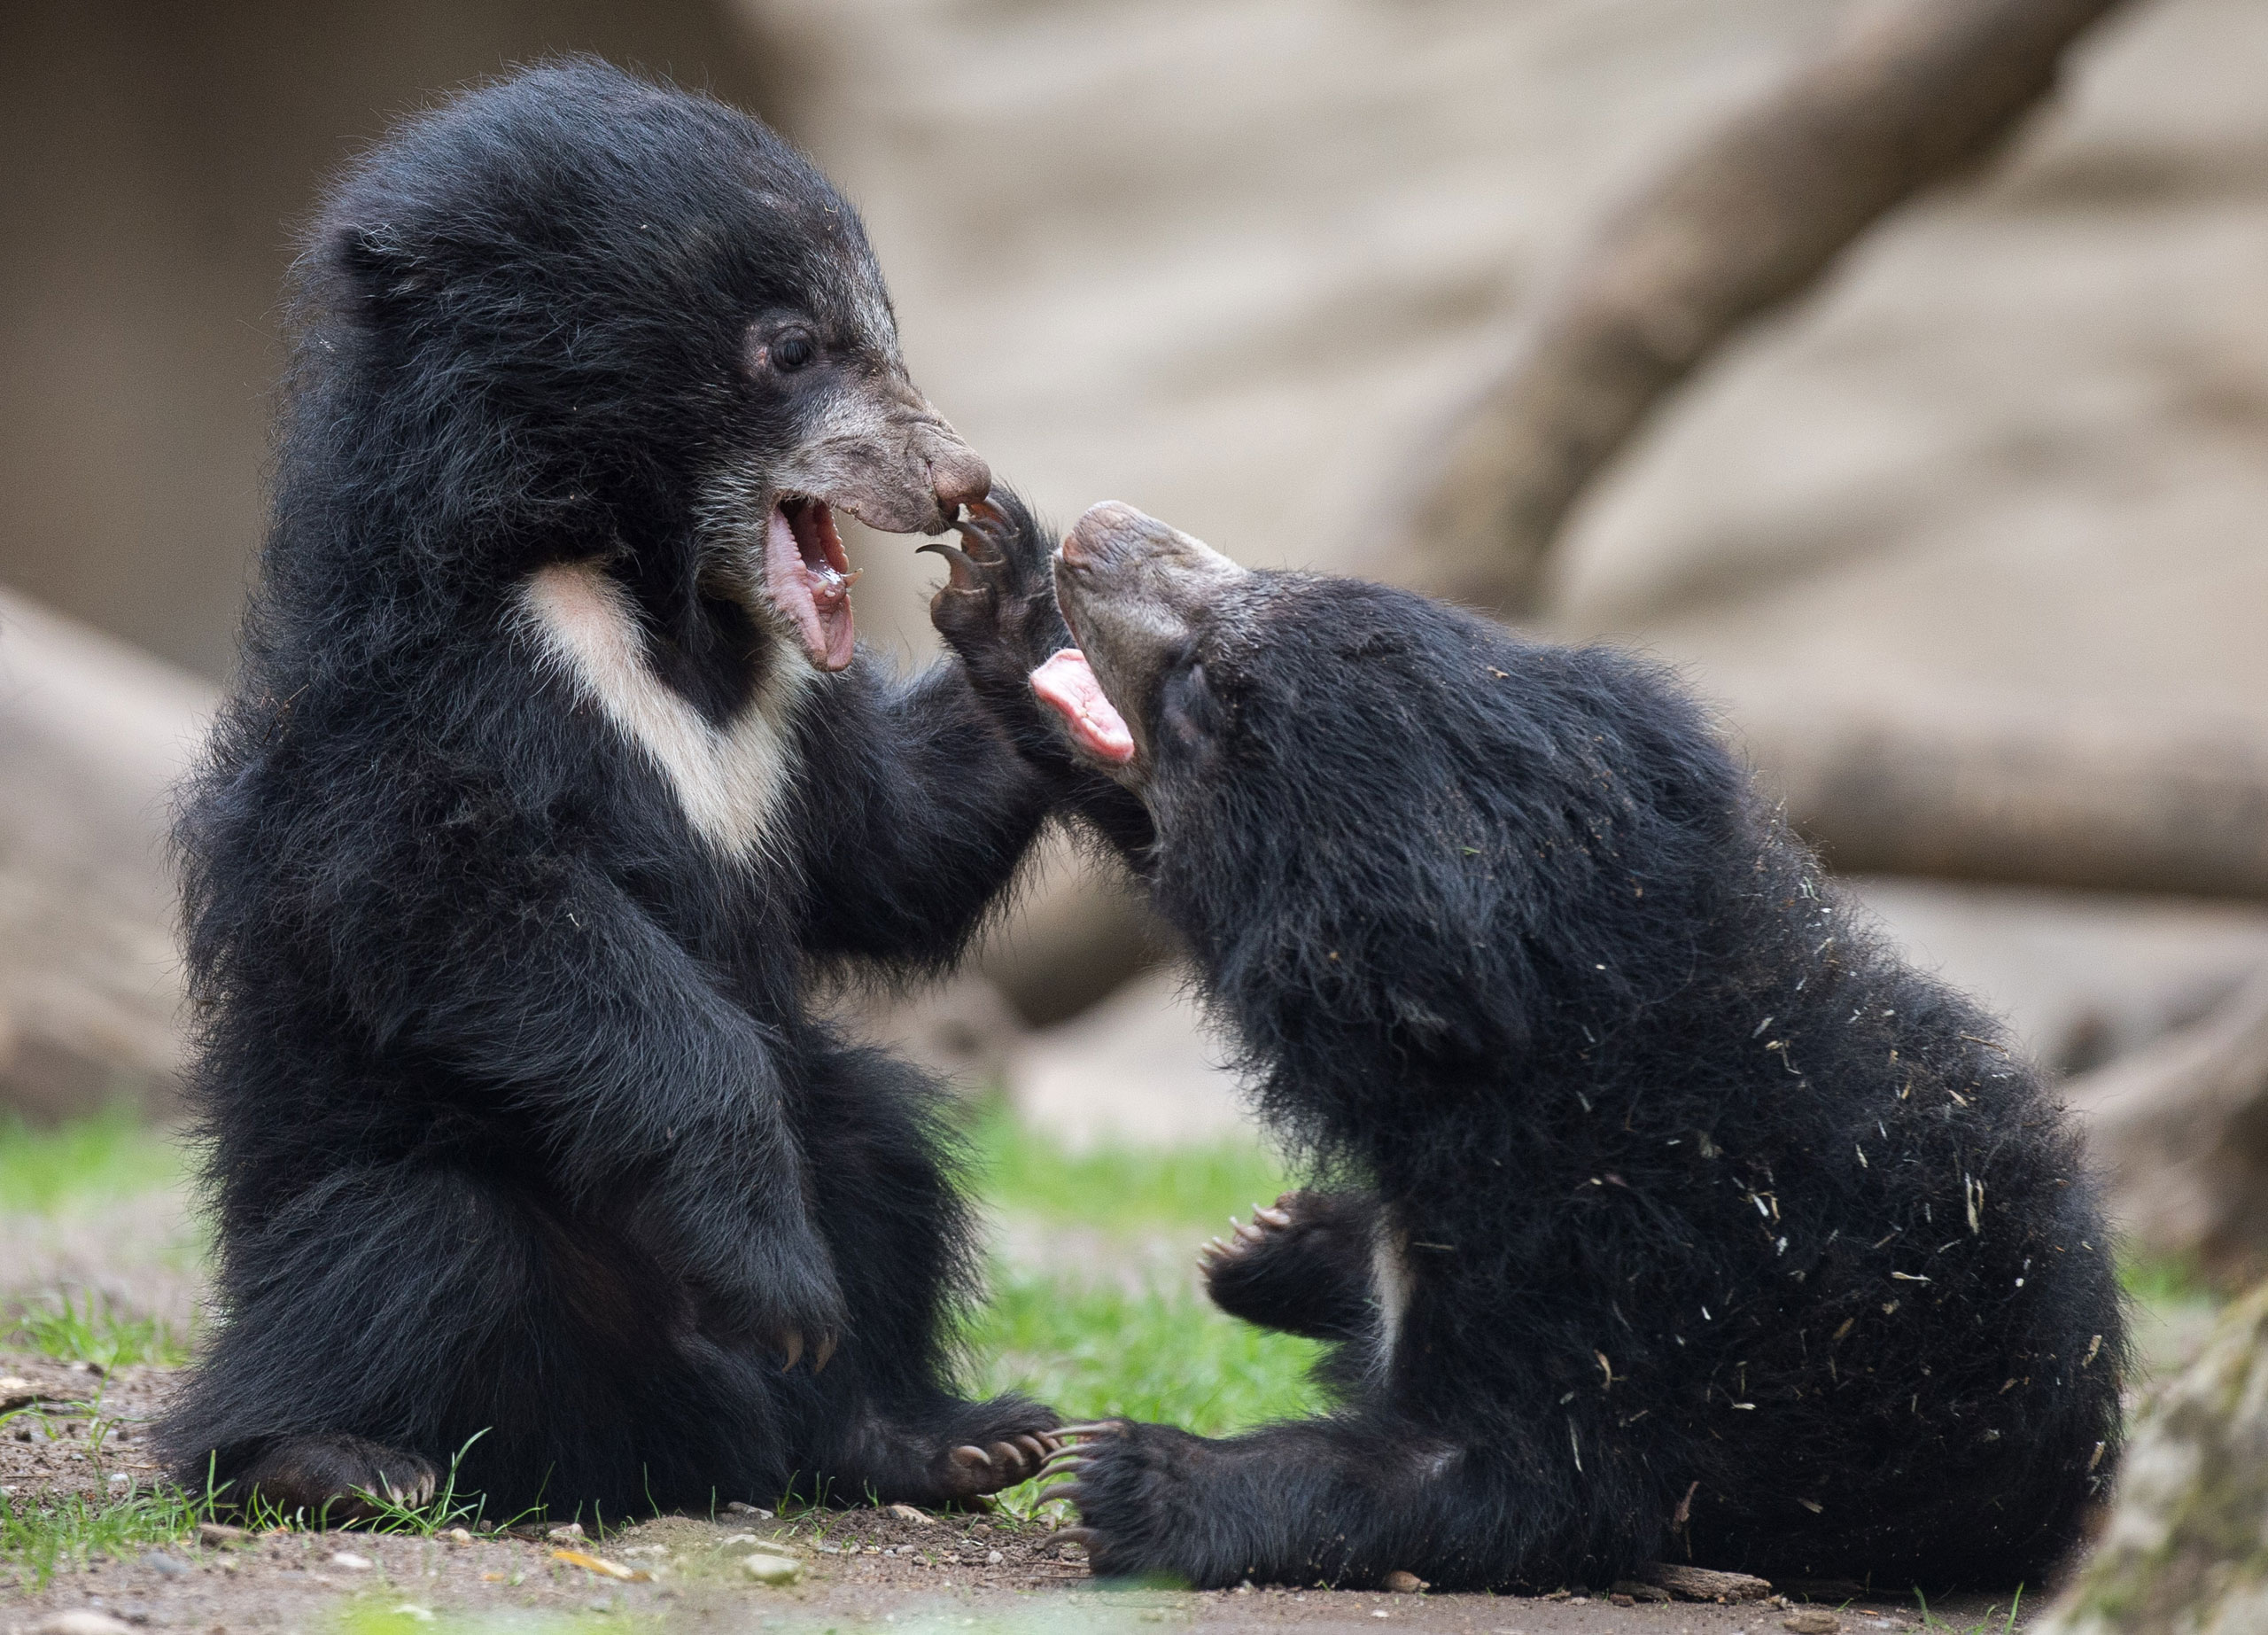 Two young sloth bears play in the zoo in Leipzig, Germany, May 5, 2015.